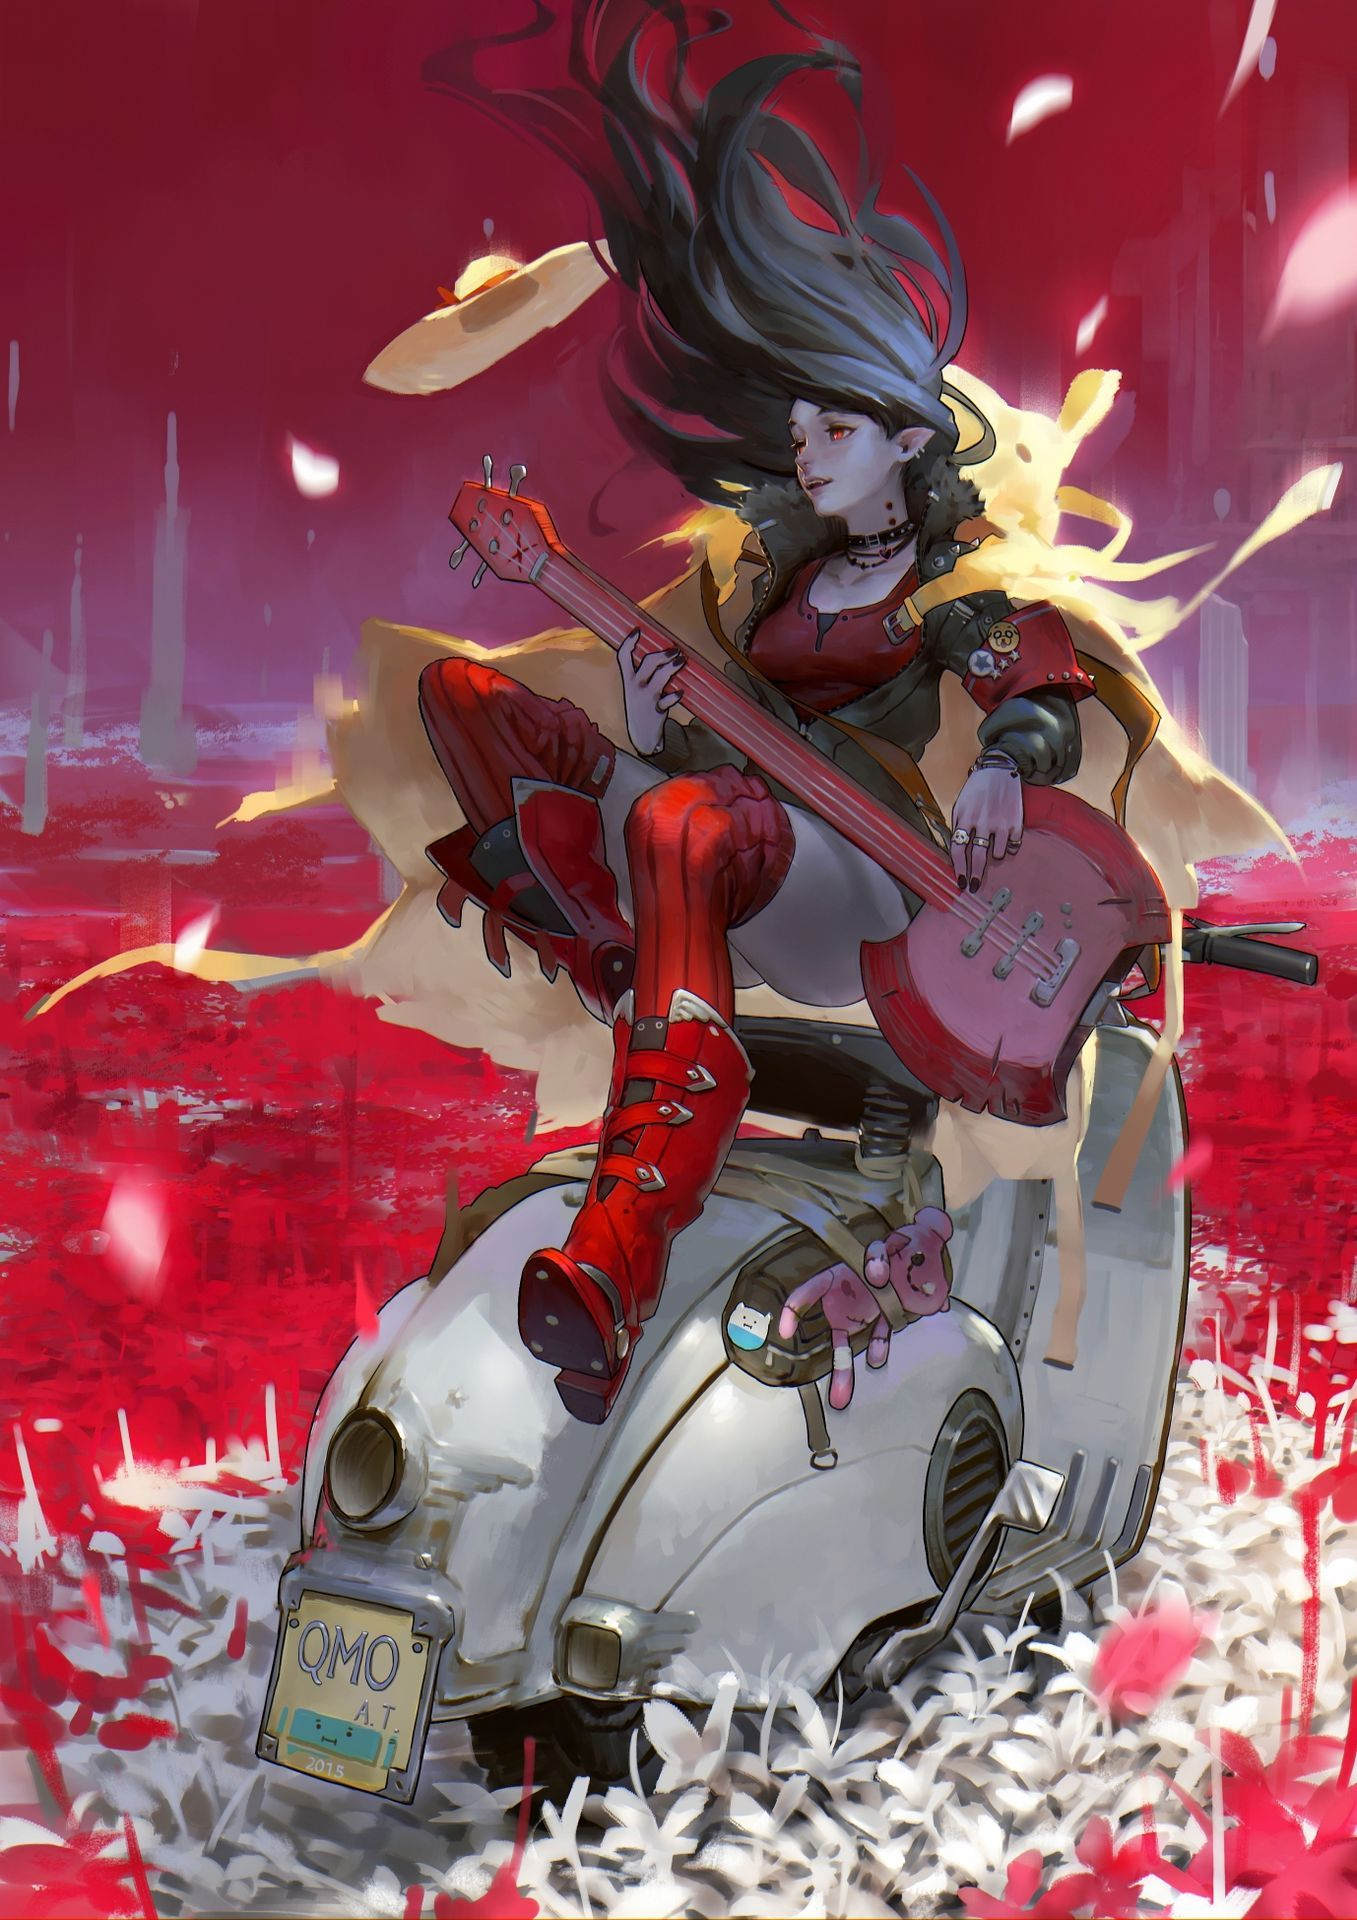 Check out this awesome piece by 羅 光佑 on DrawCrowd